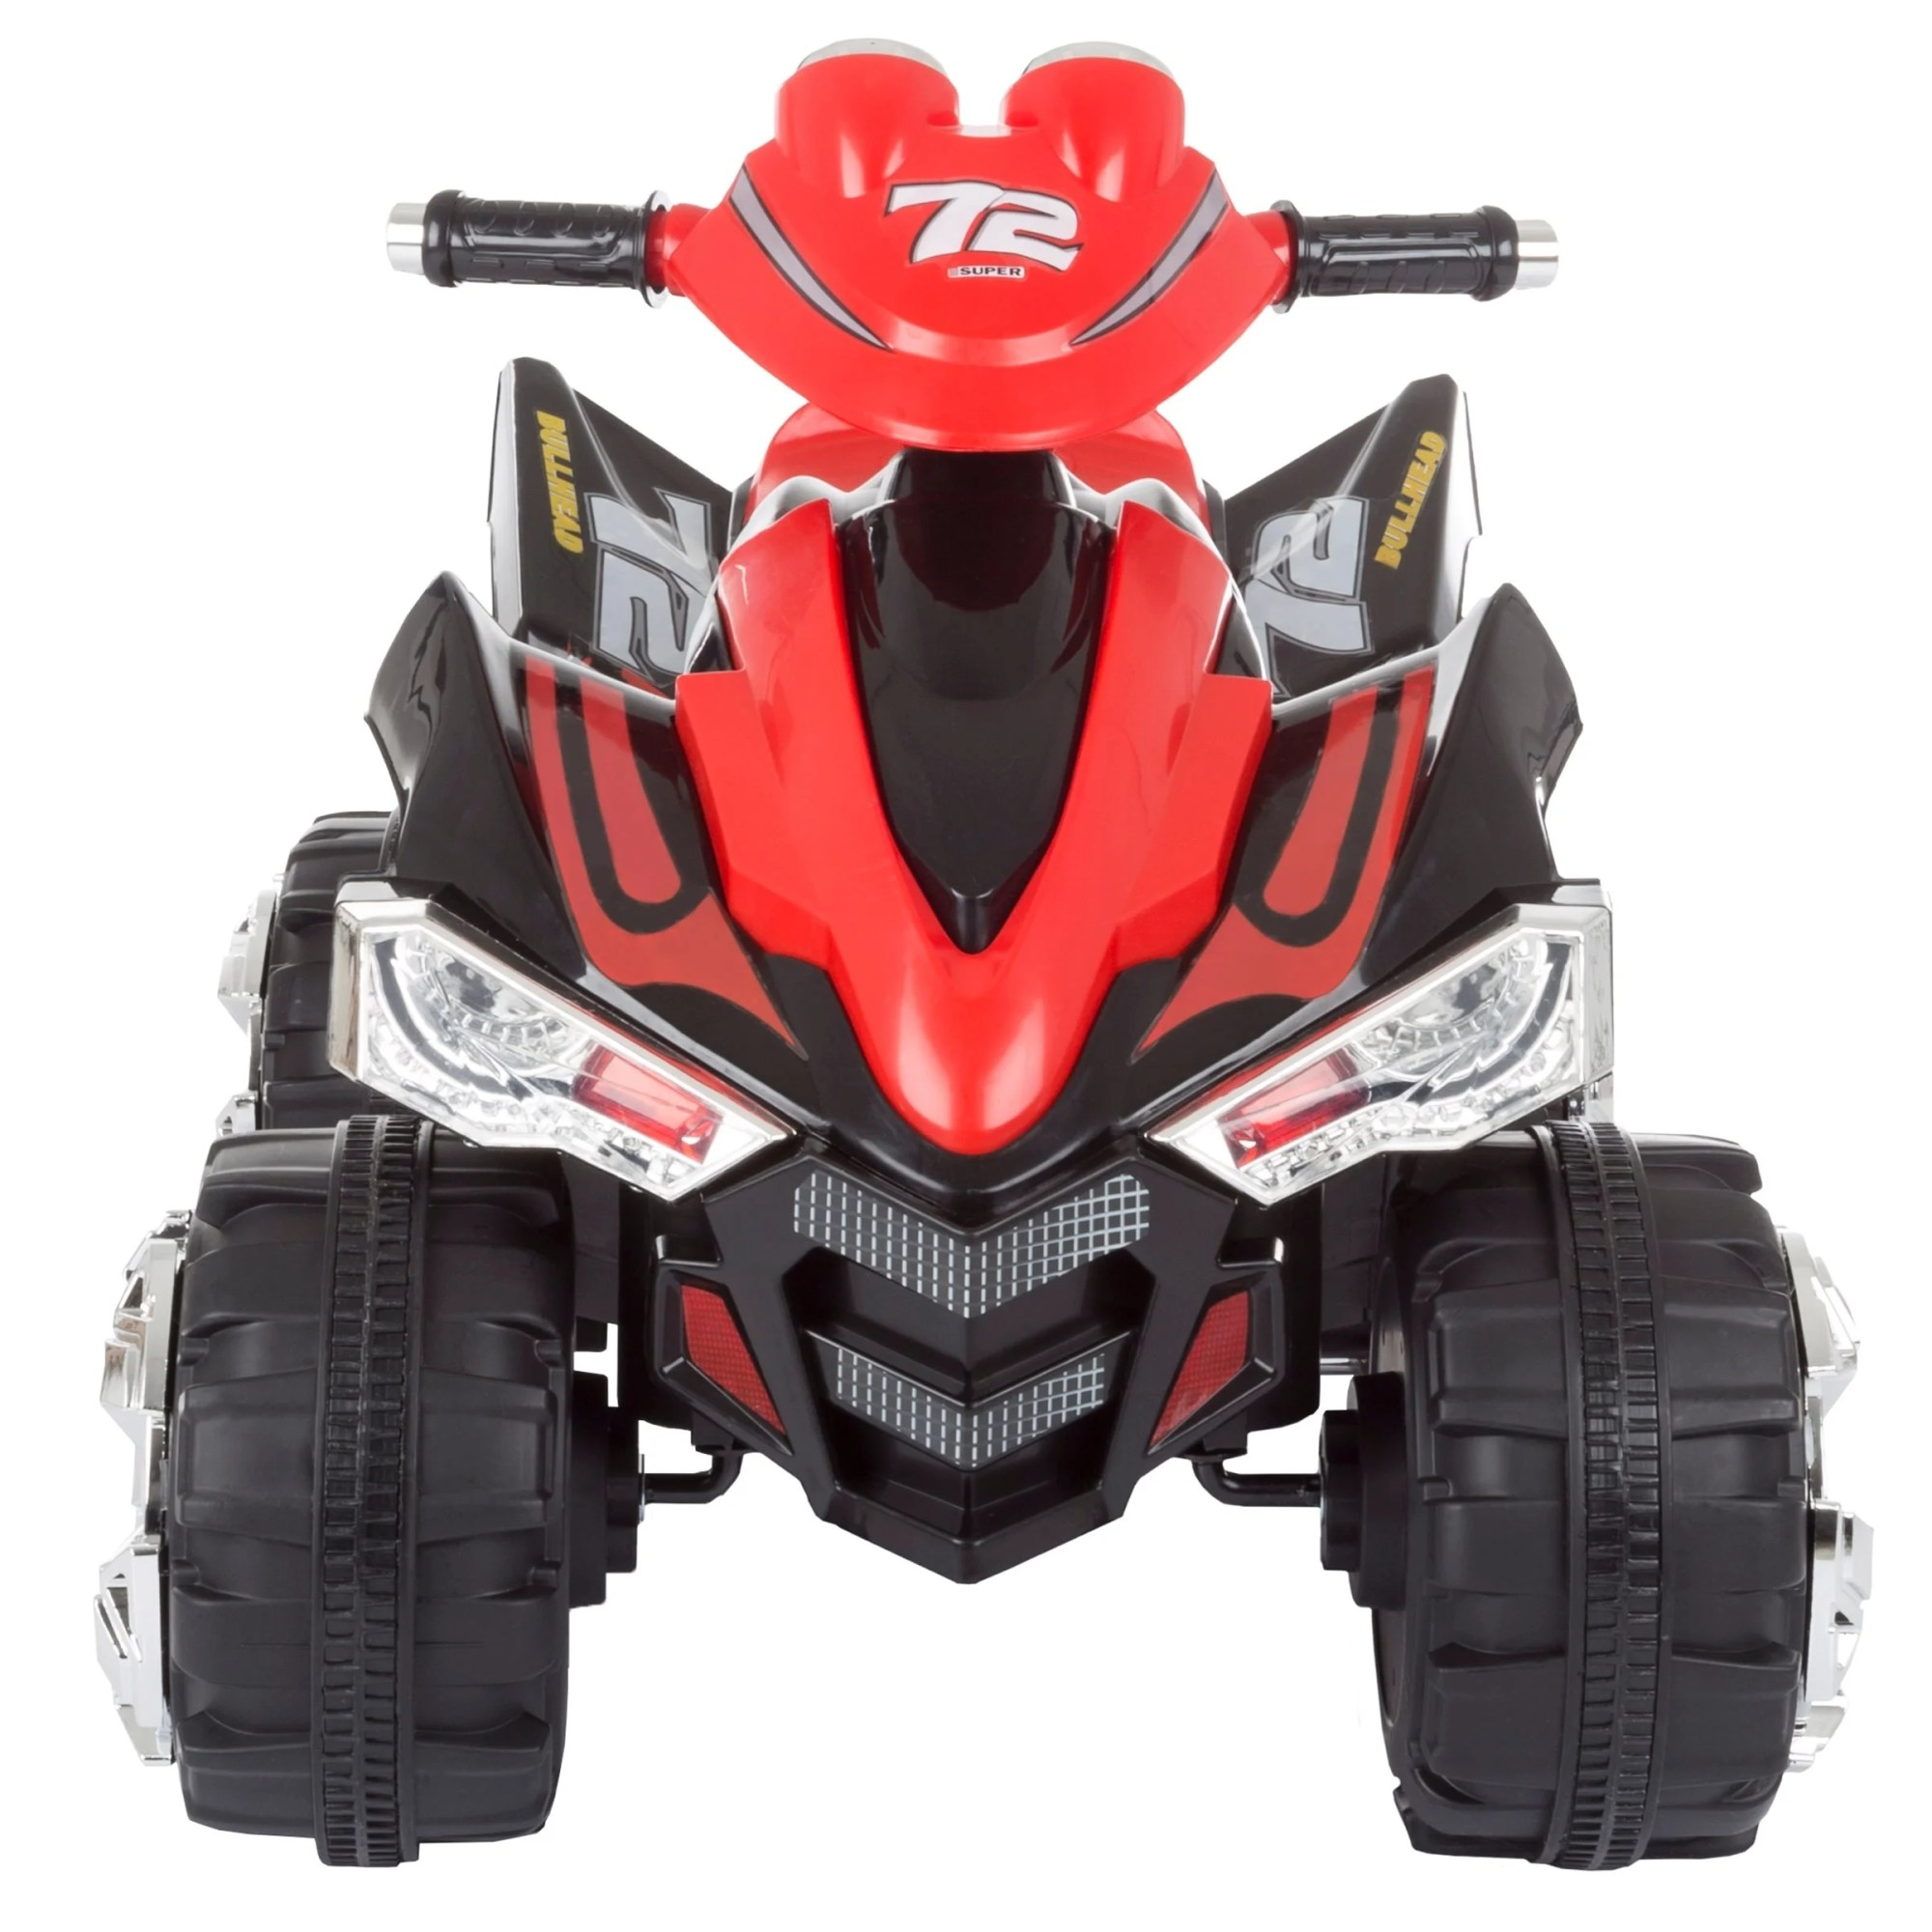 hight resolution of shop battery powered ride on toy atv four wheeler with sound effects by lil rider black red free shipping today overstock com 20710170